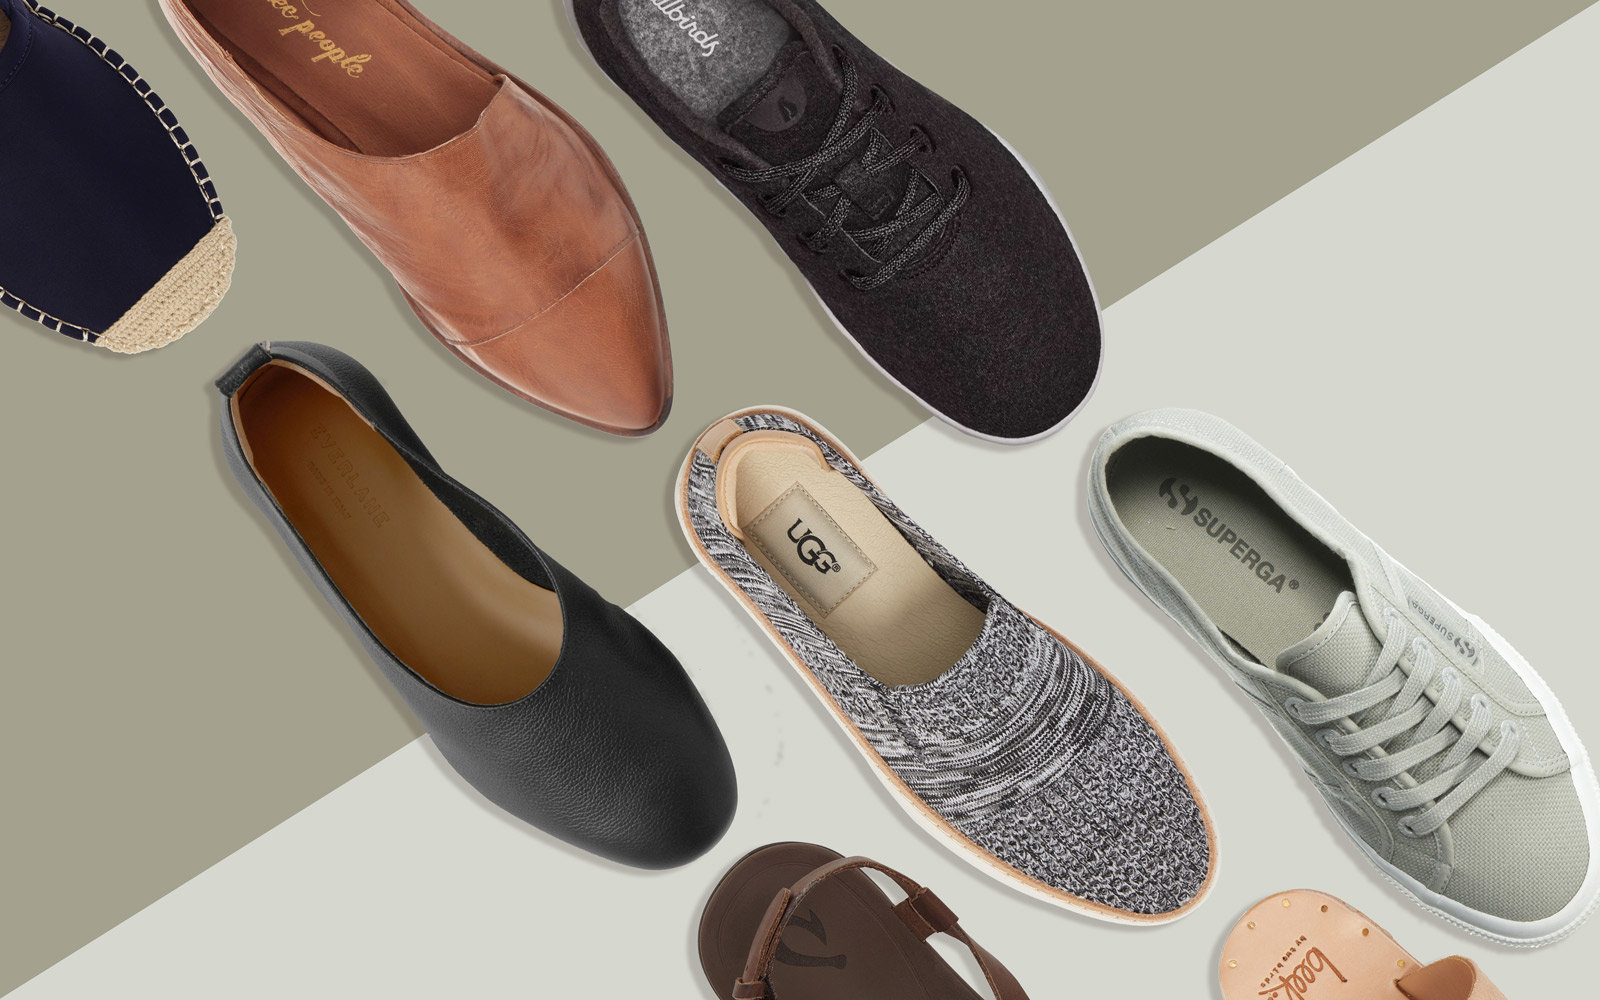 2019 year look- Stylish best walking shoes for paris